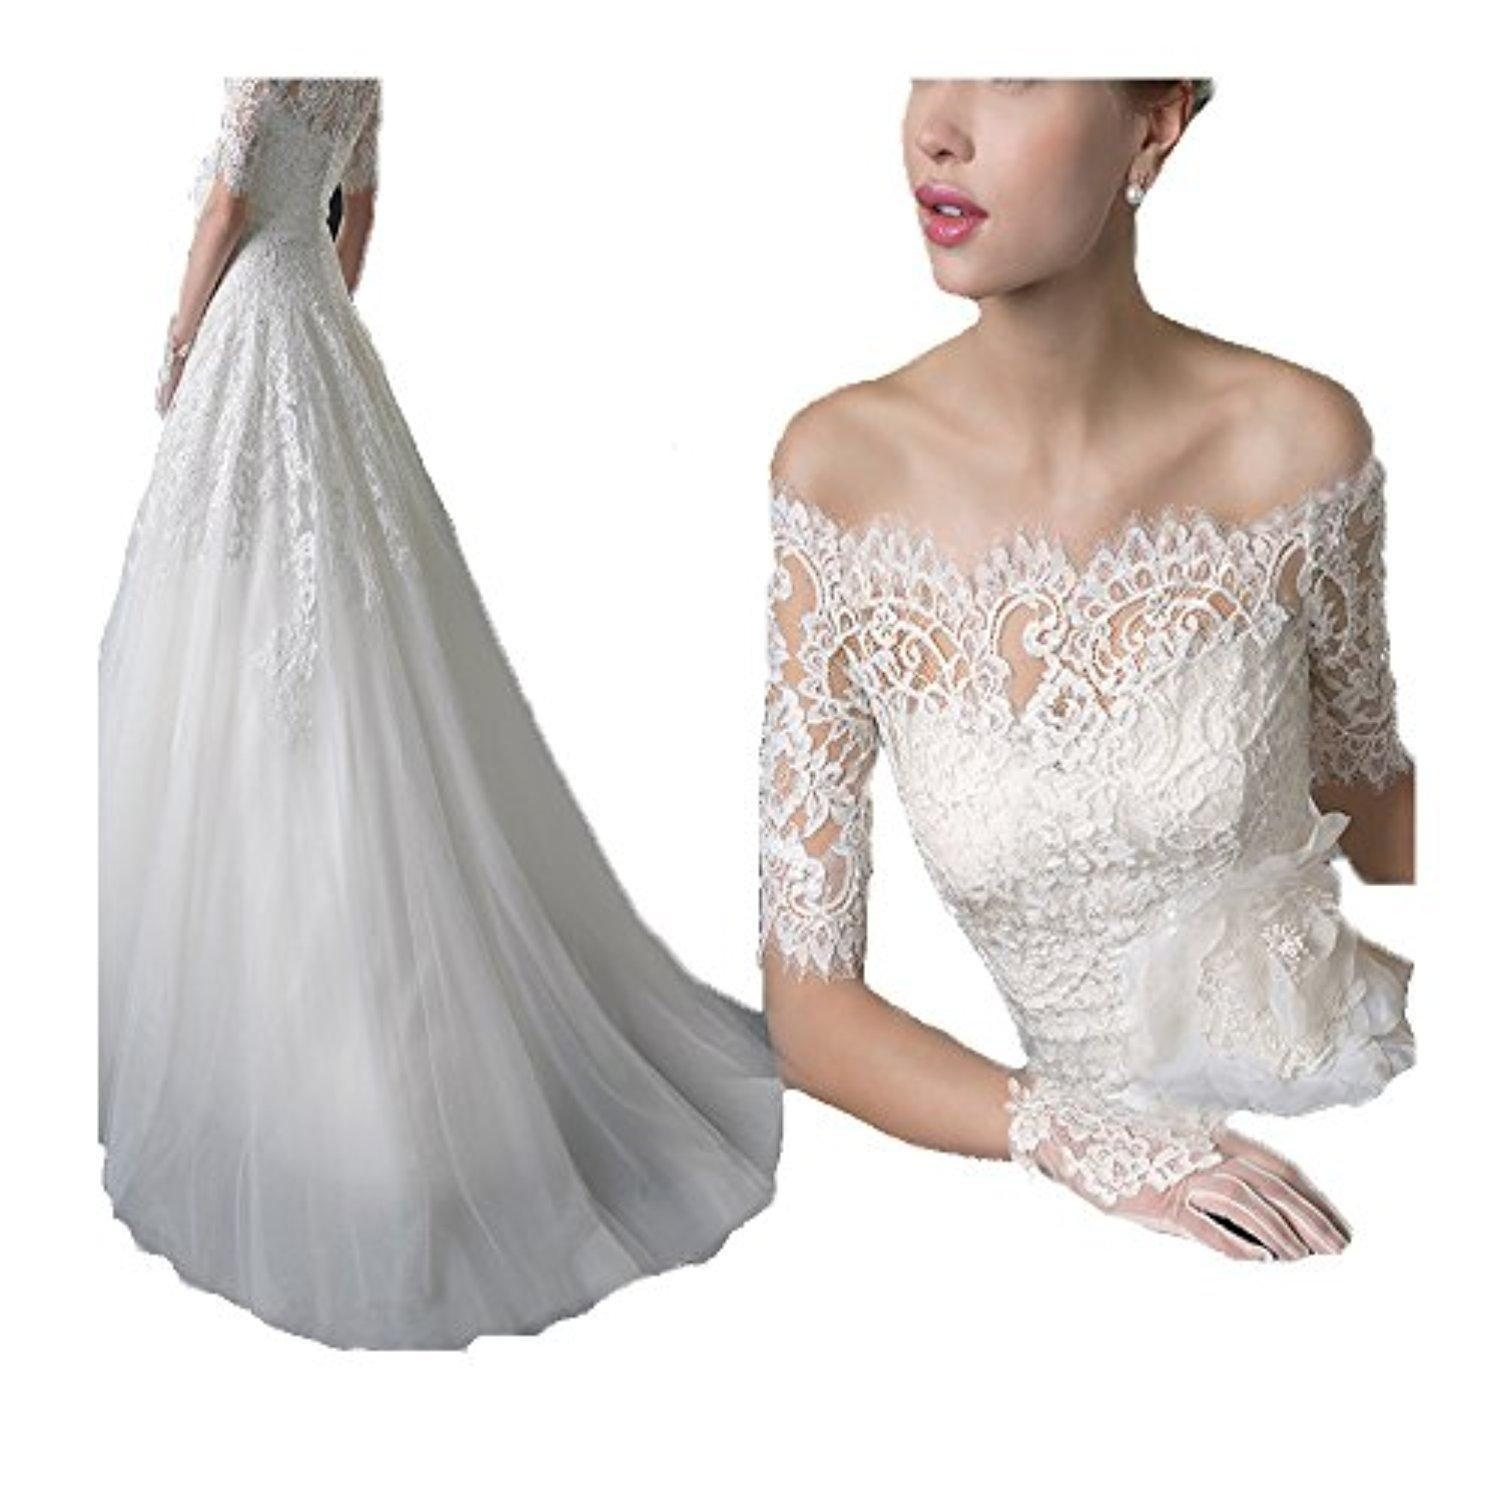 Creative Off Shoulder Lace Ball Gown Wedding Dress with Half Sleeves